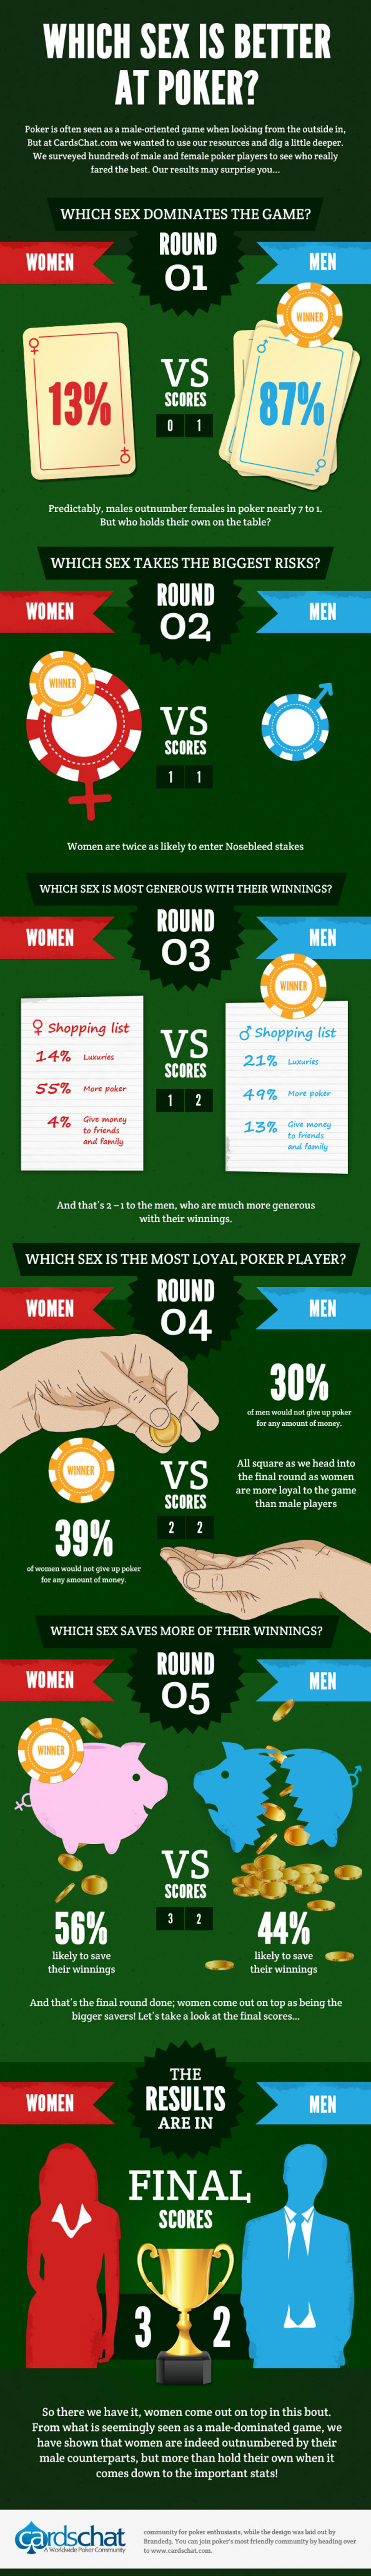 Poker Stats: Battle of the Sexes Infographic